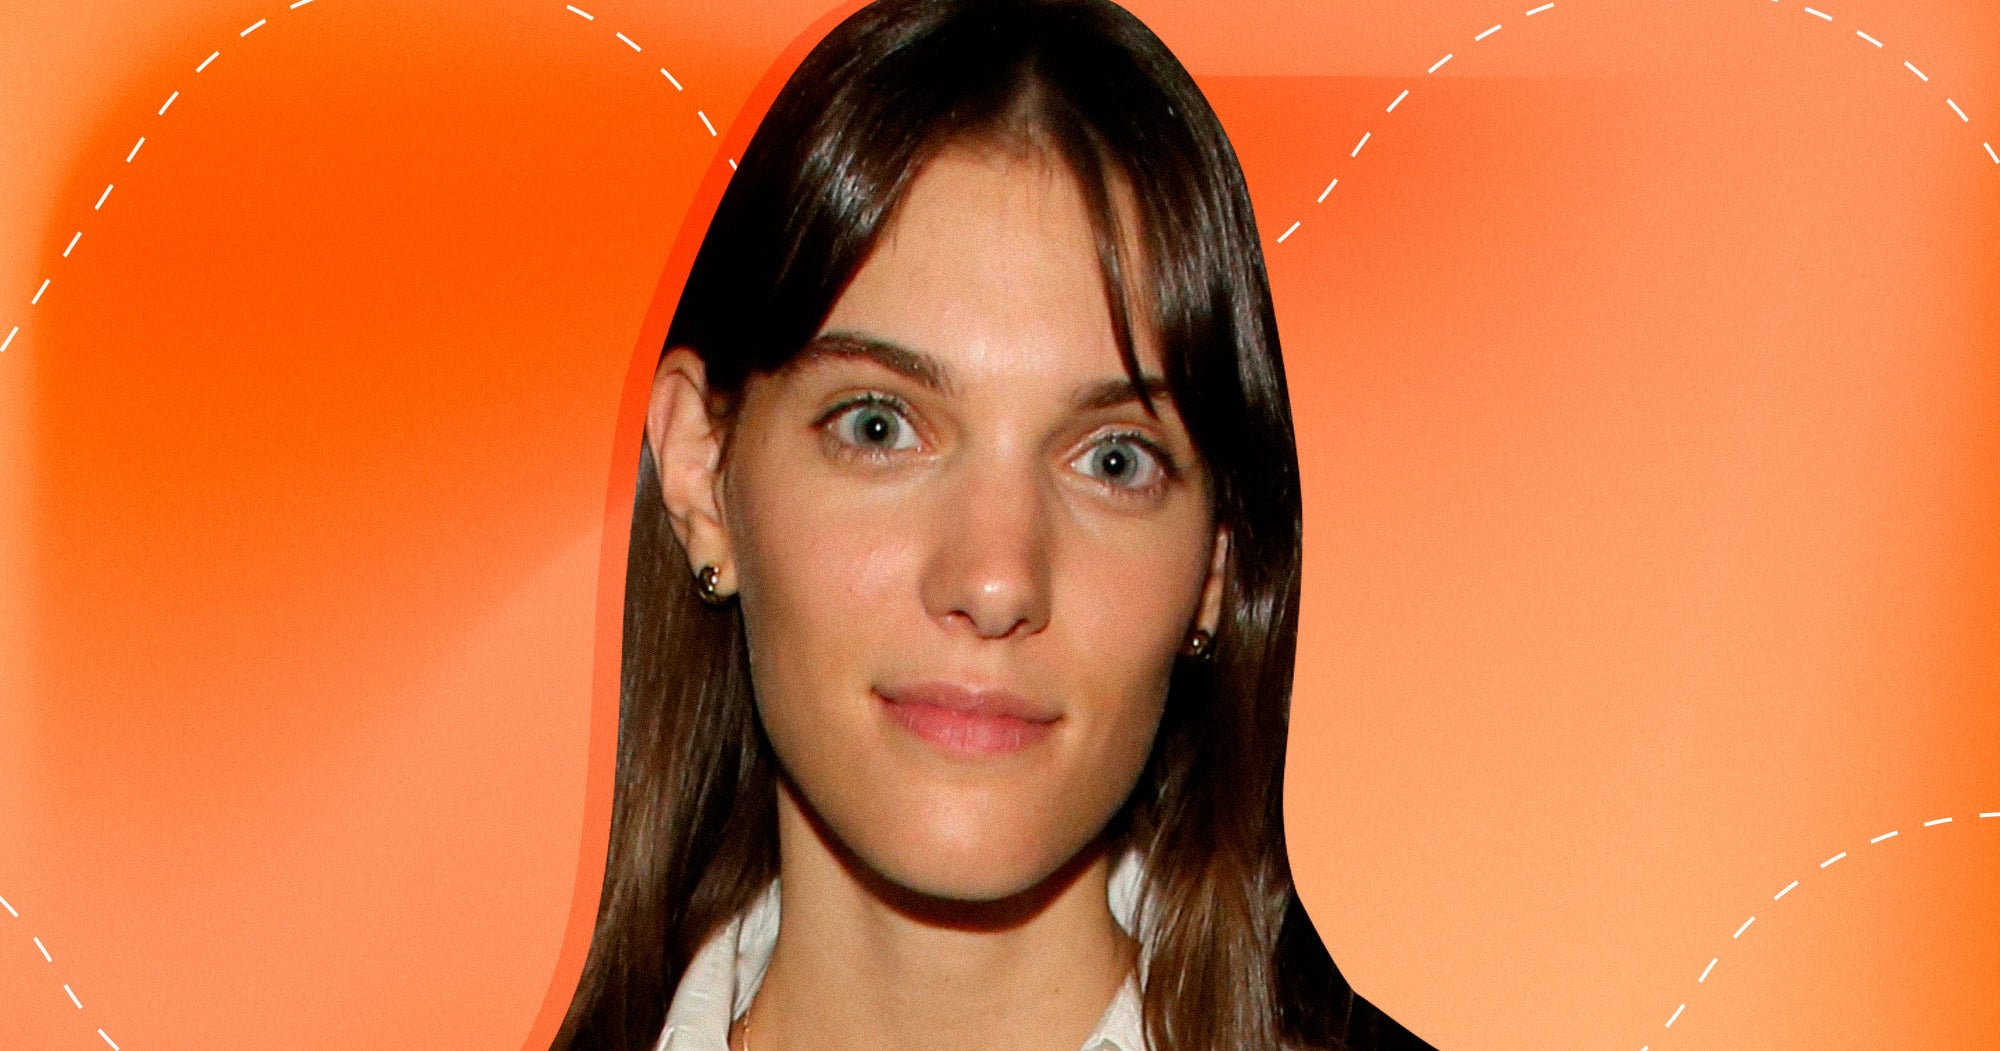 A Day In The Life At TIFF: Charlotte Cardin Plays Dress-Up With Chanel